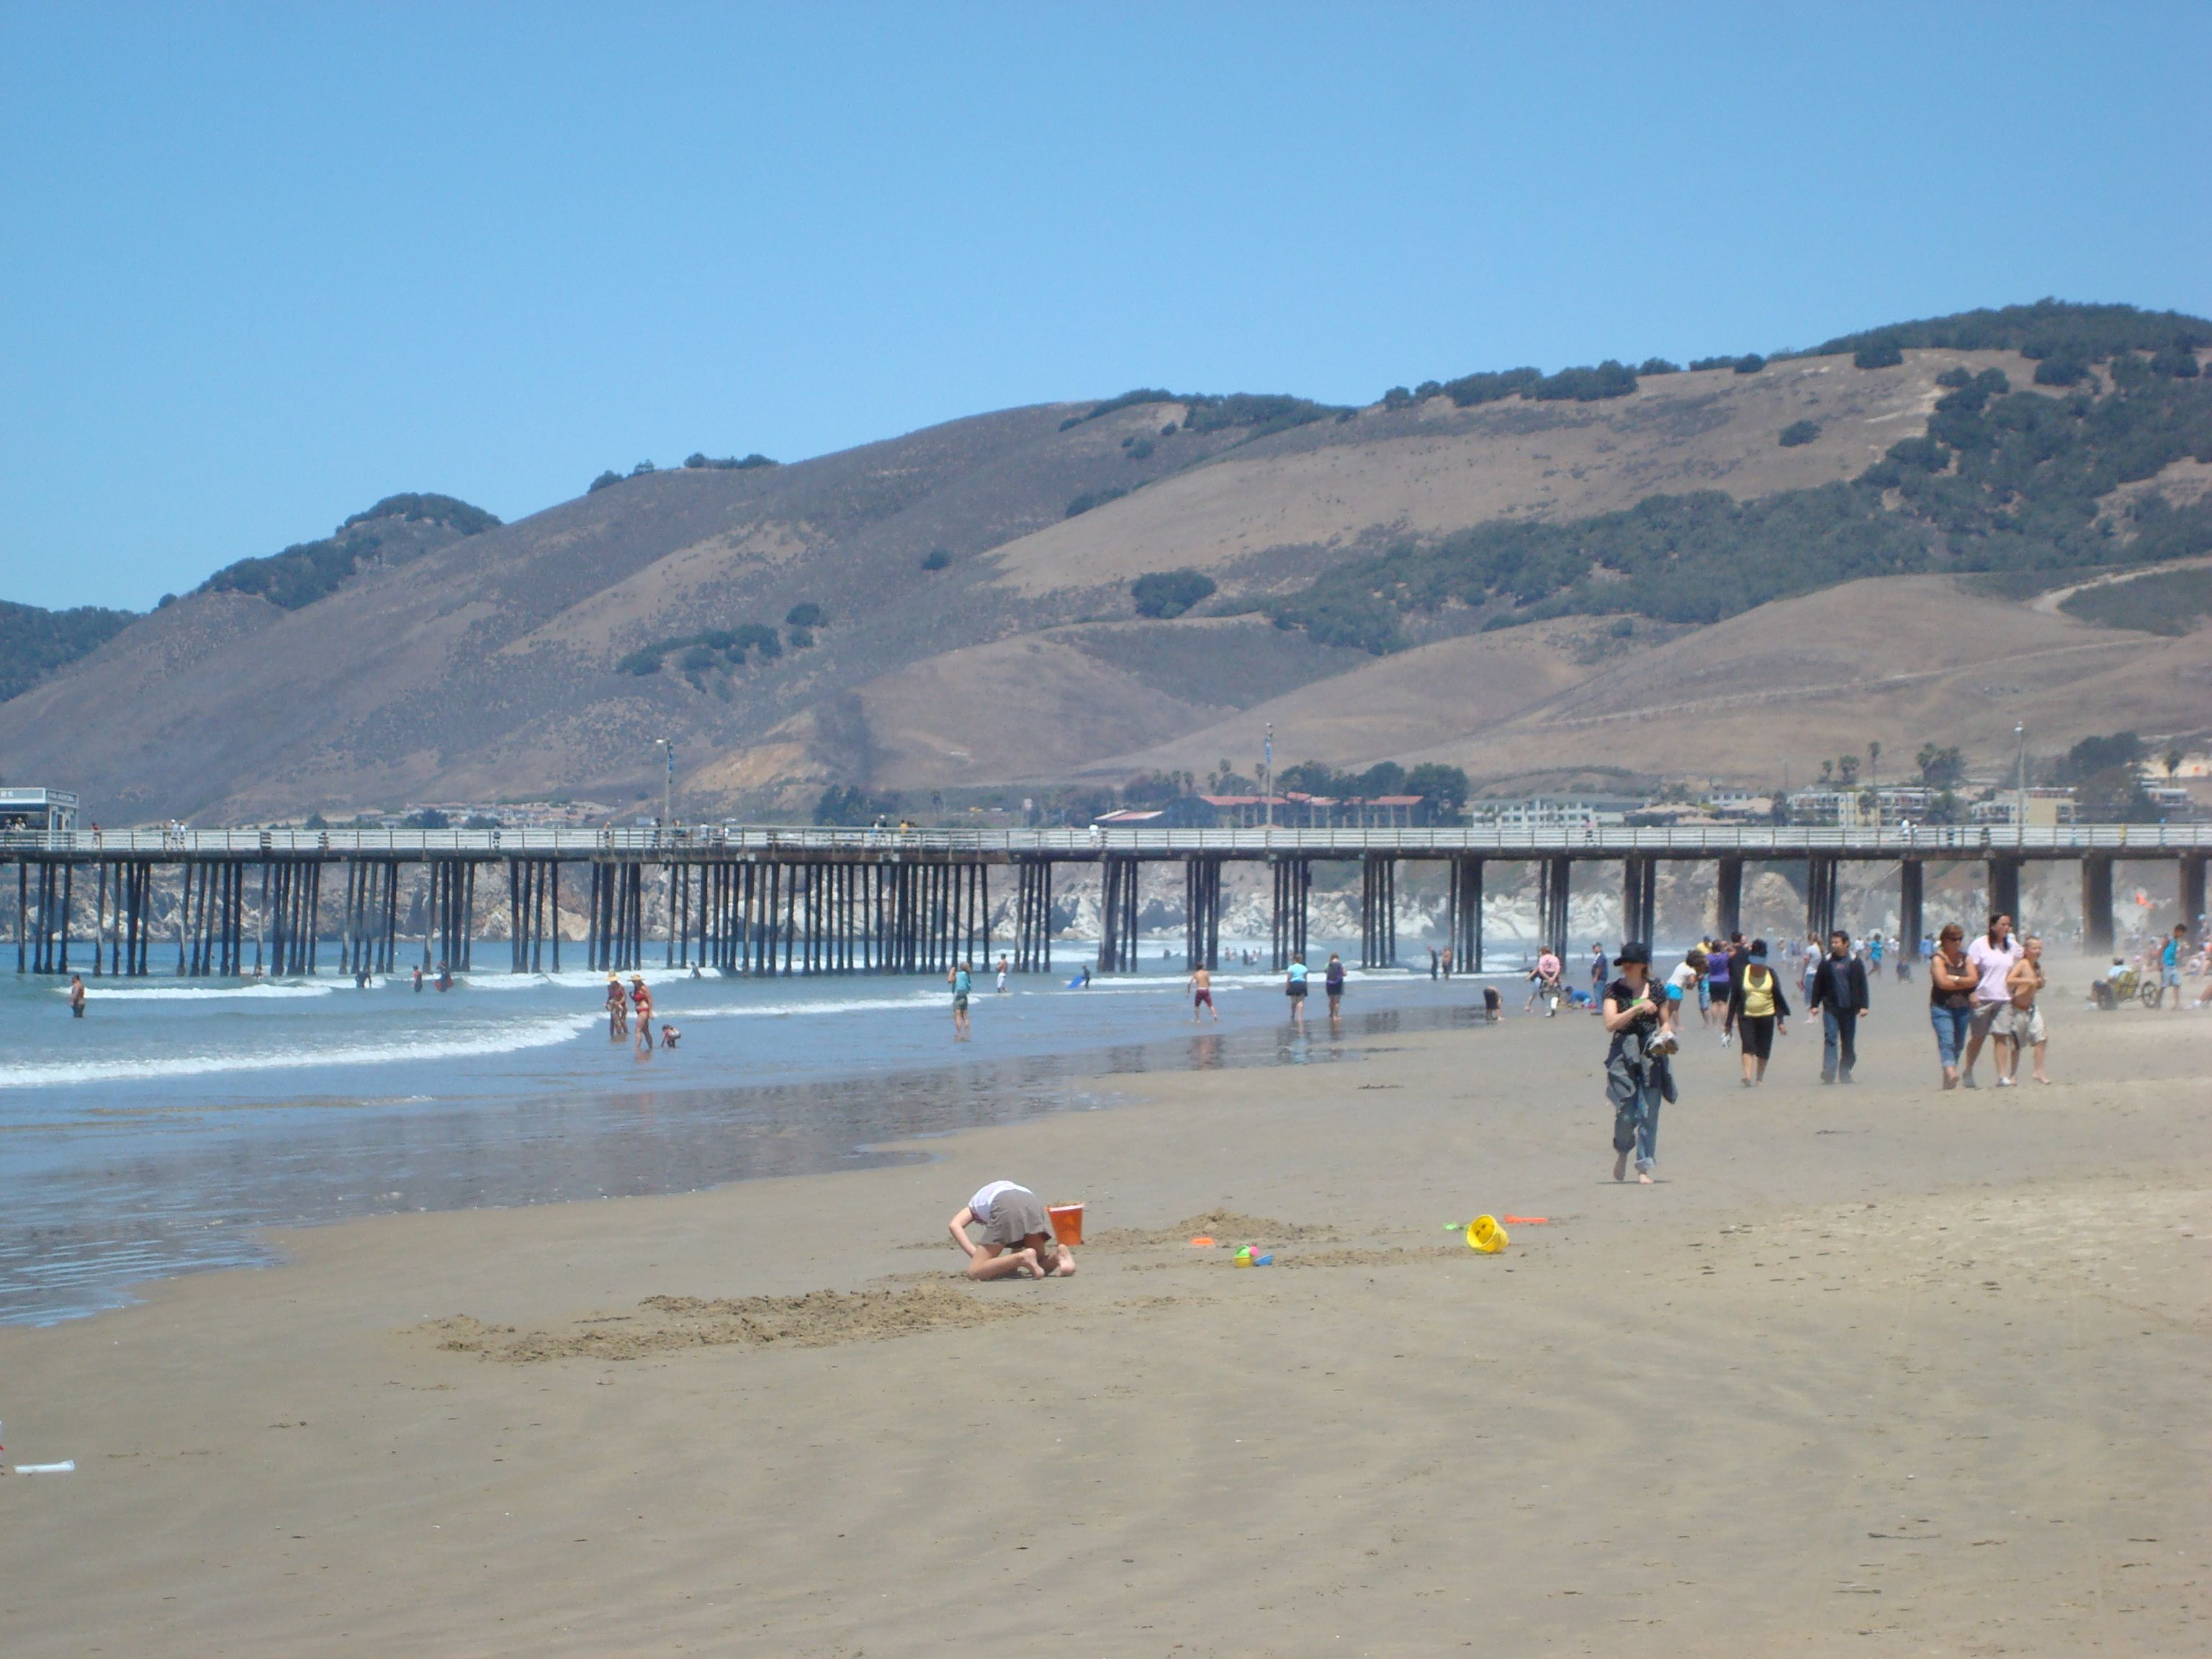 Pismo Beach Ca Great Place To Take The Dogs For A Walk